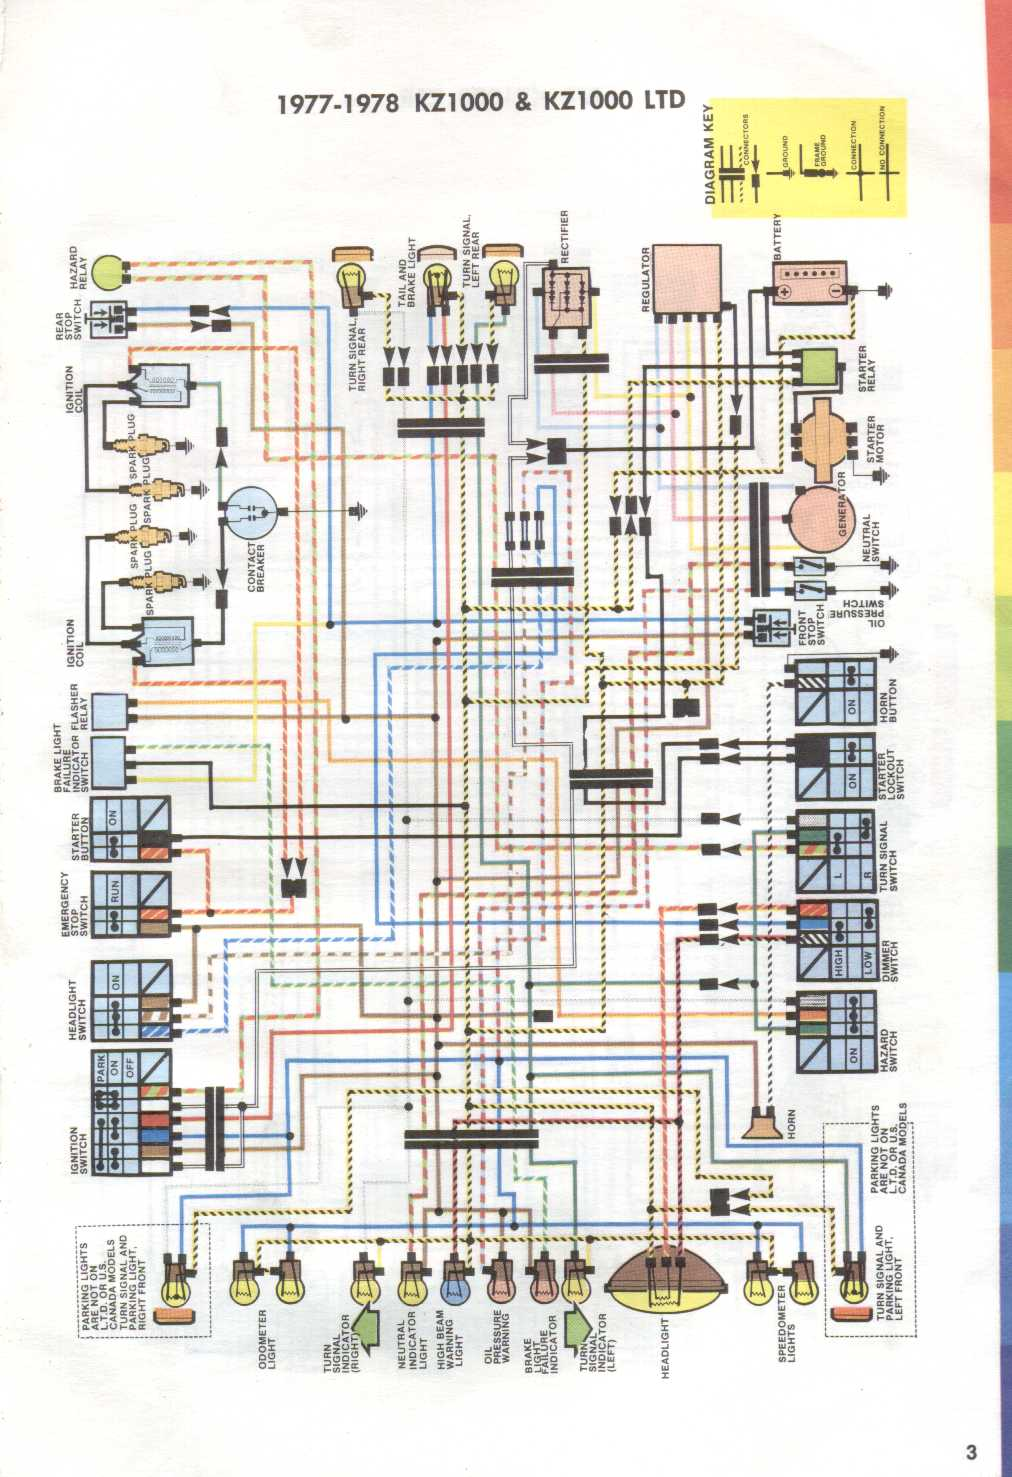 Kawasaki_KZ1000 LTD_Wiring_Diagram_1977 1978 wiring diagram for 1977 1978 kawasaki kz1000 and kz1000ltd kawasaki wiring diagrams at gsmportal.co